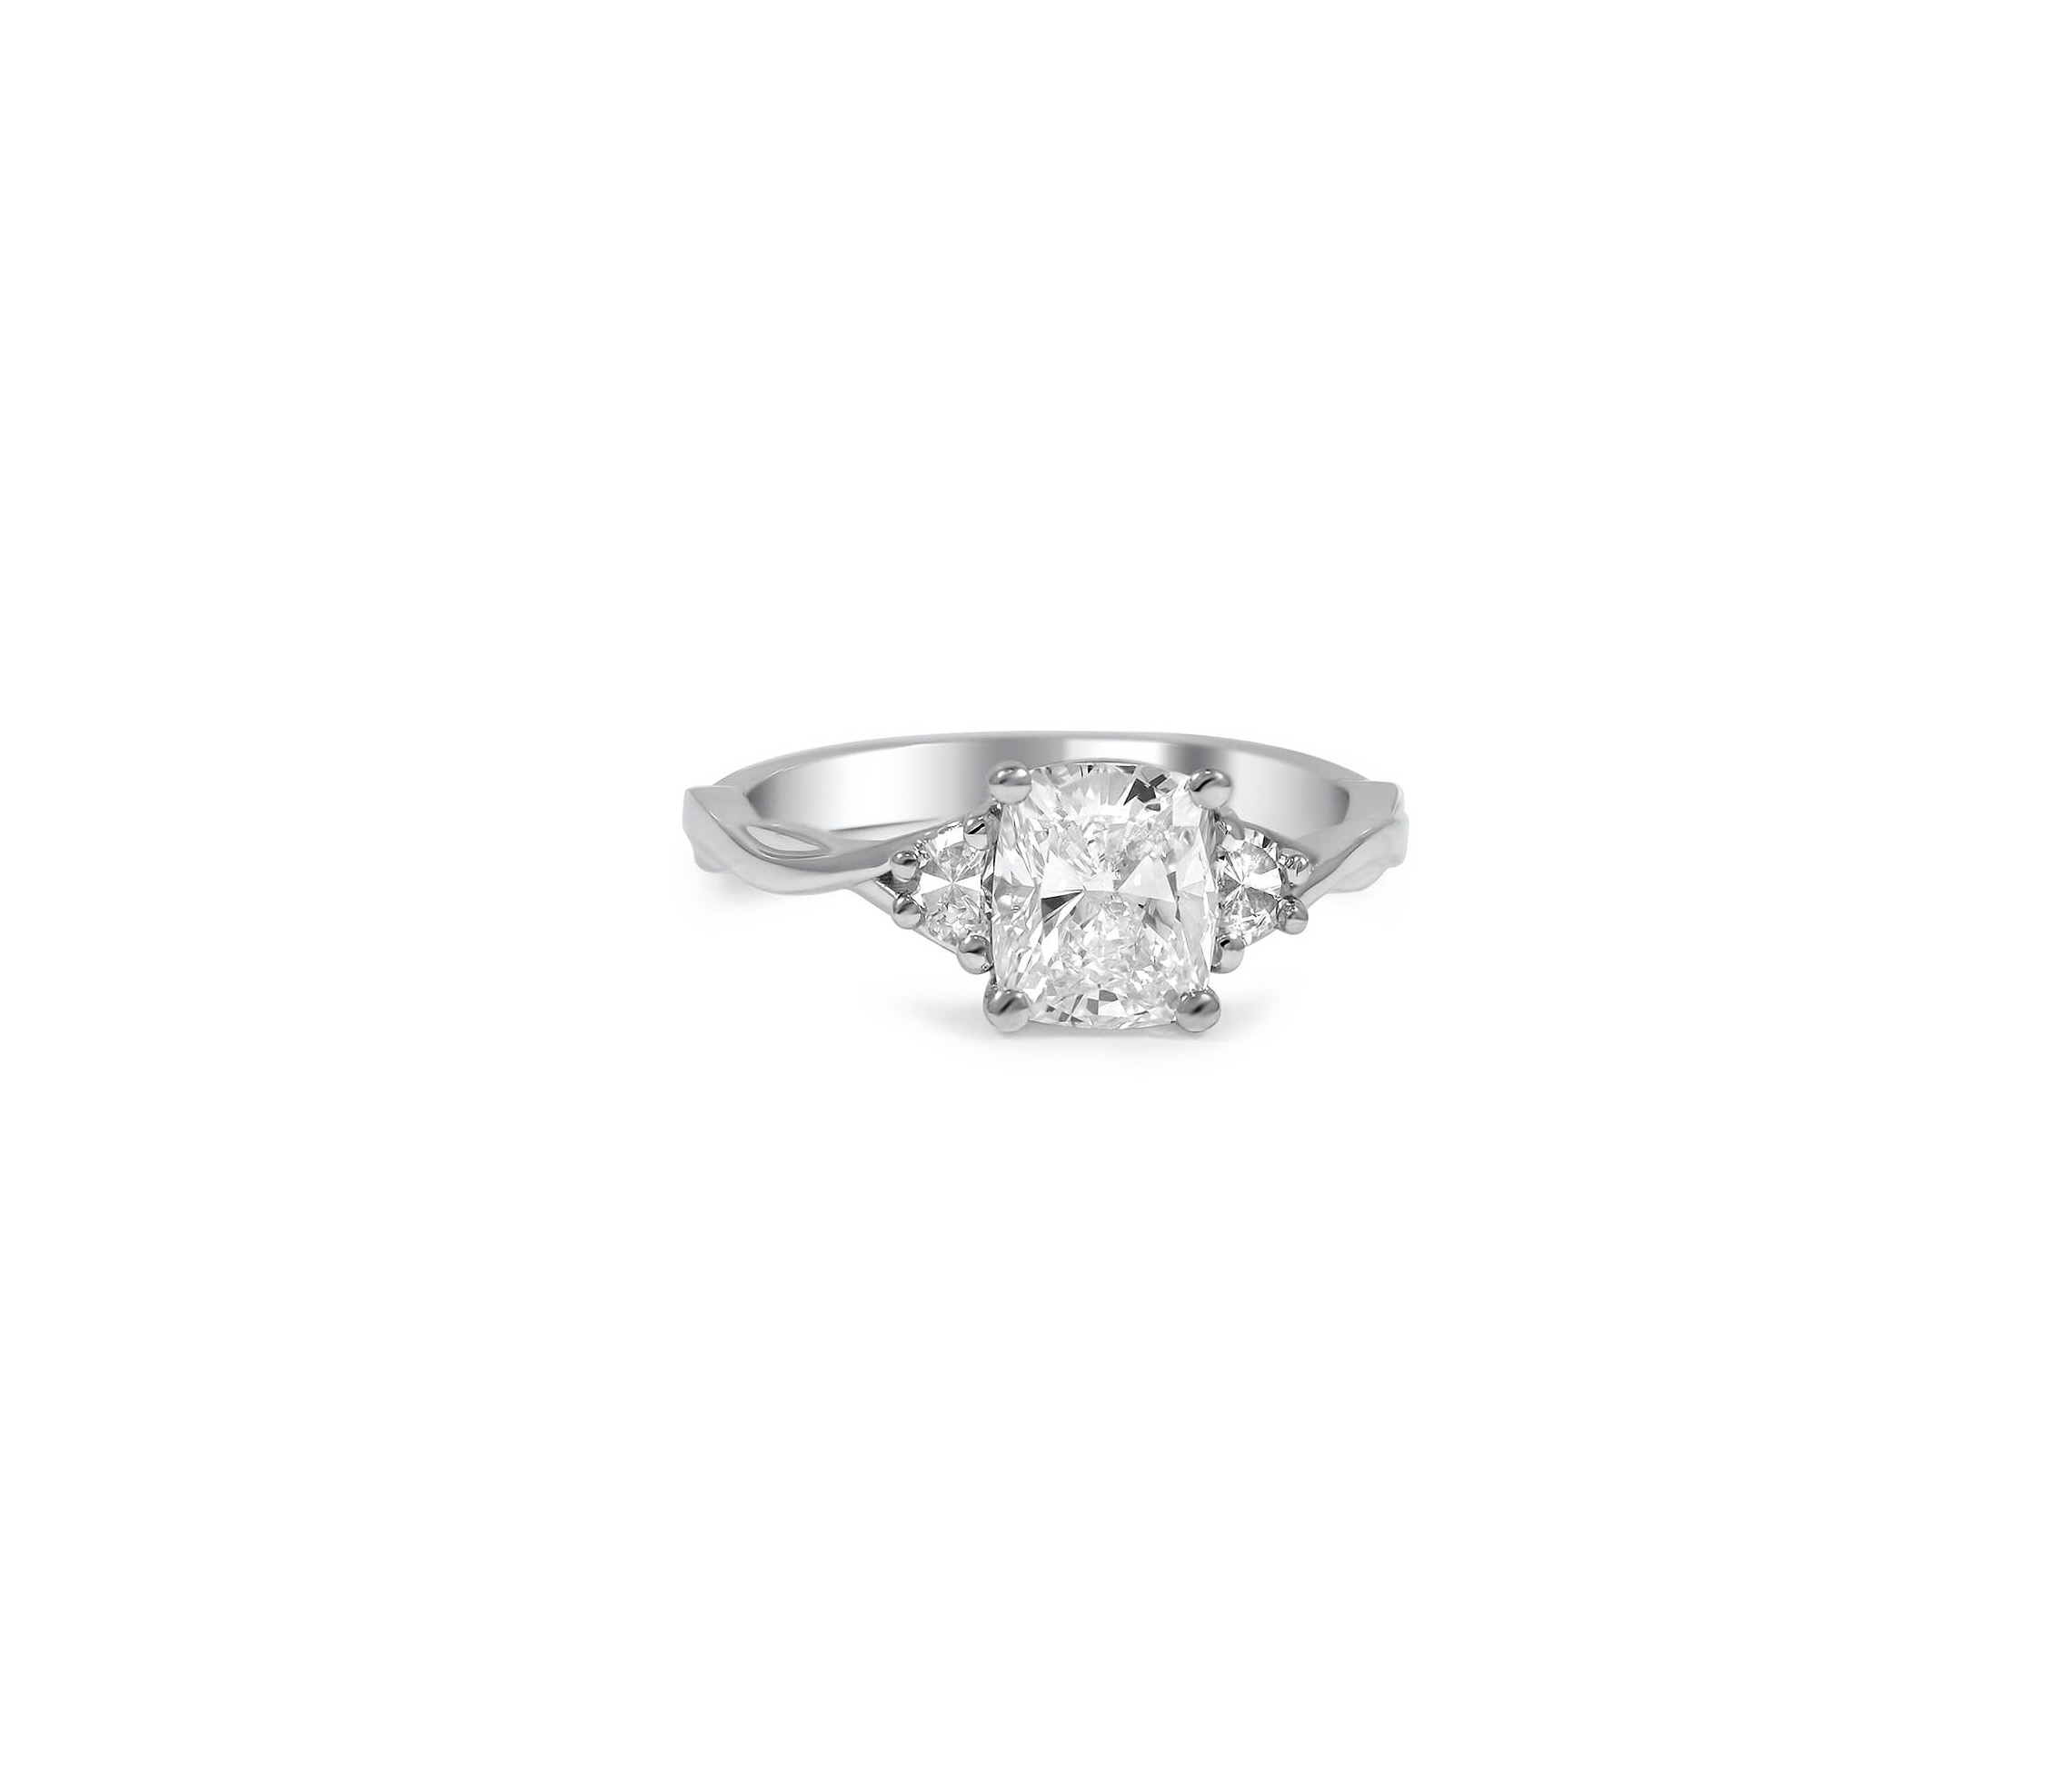 brilliant earth cushion cut diamond engagement ring with twisted band